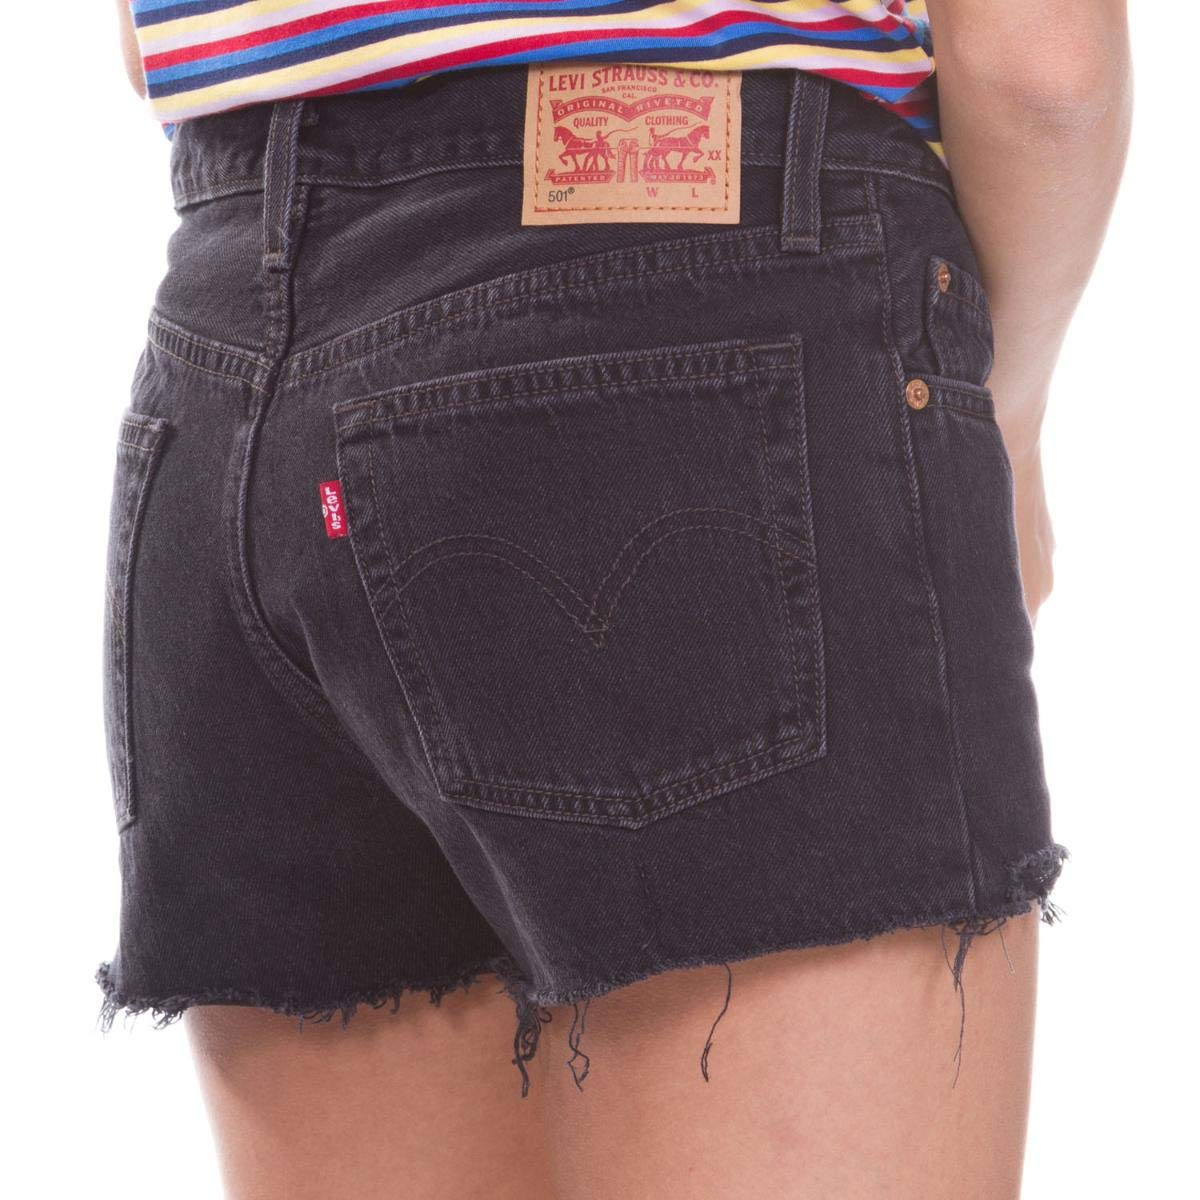 aff29010eb775 Levi's¿ Womens Women's 501¿ Shorts Lunar Black 33 2.5 at Amazon Women's  Clothing store: